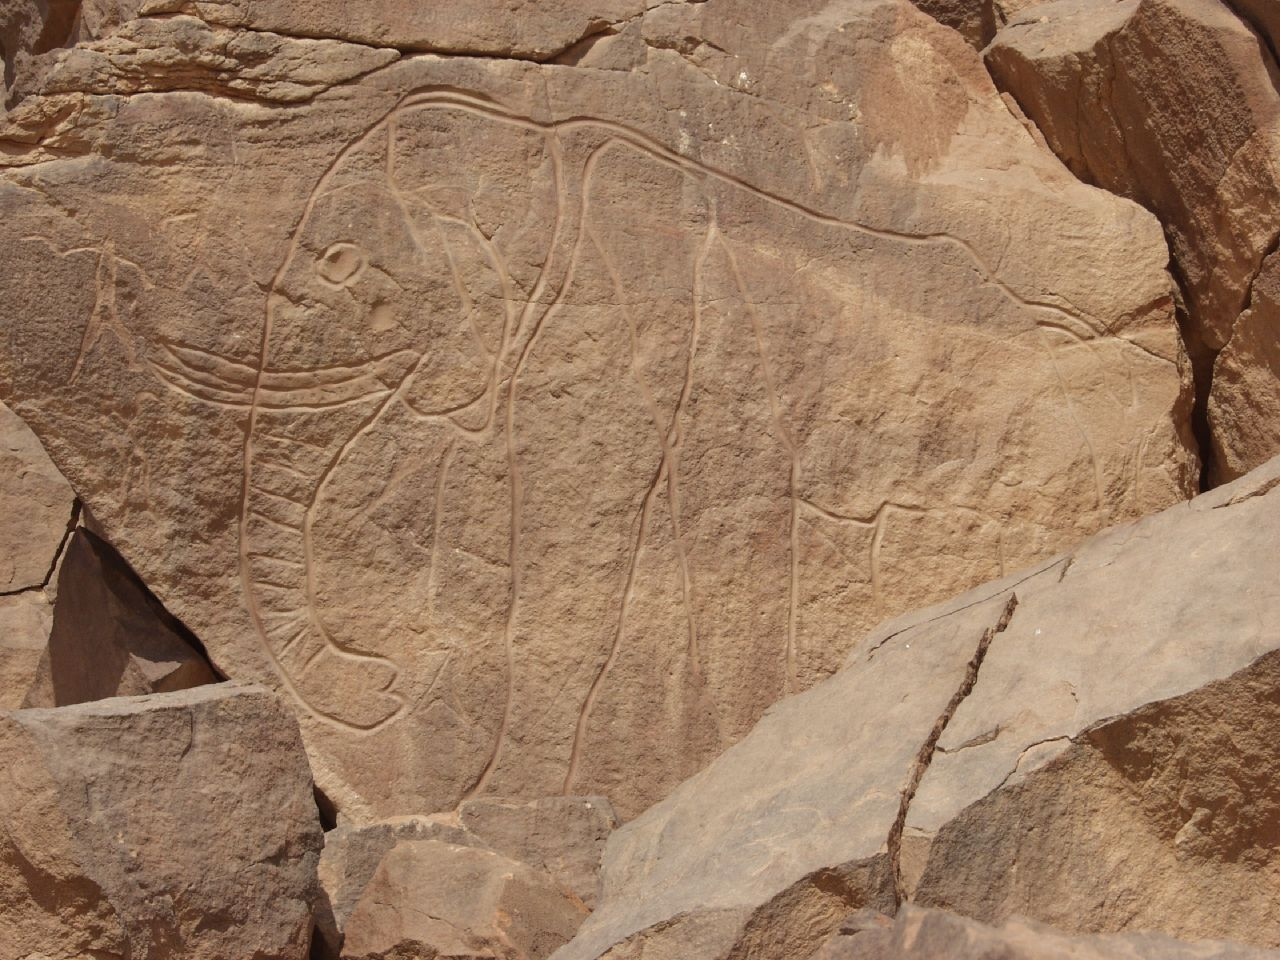 Engraving of an elephant at Mathendous in southwest Libya.